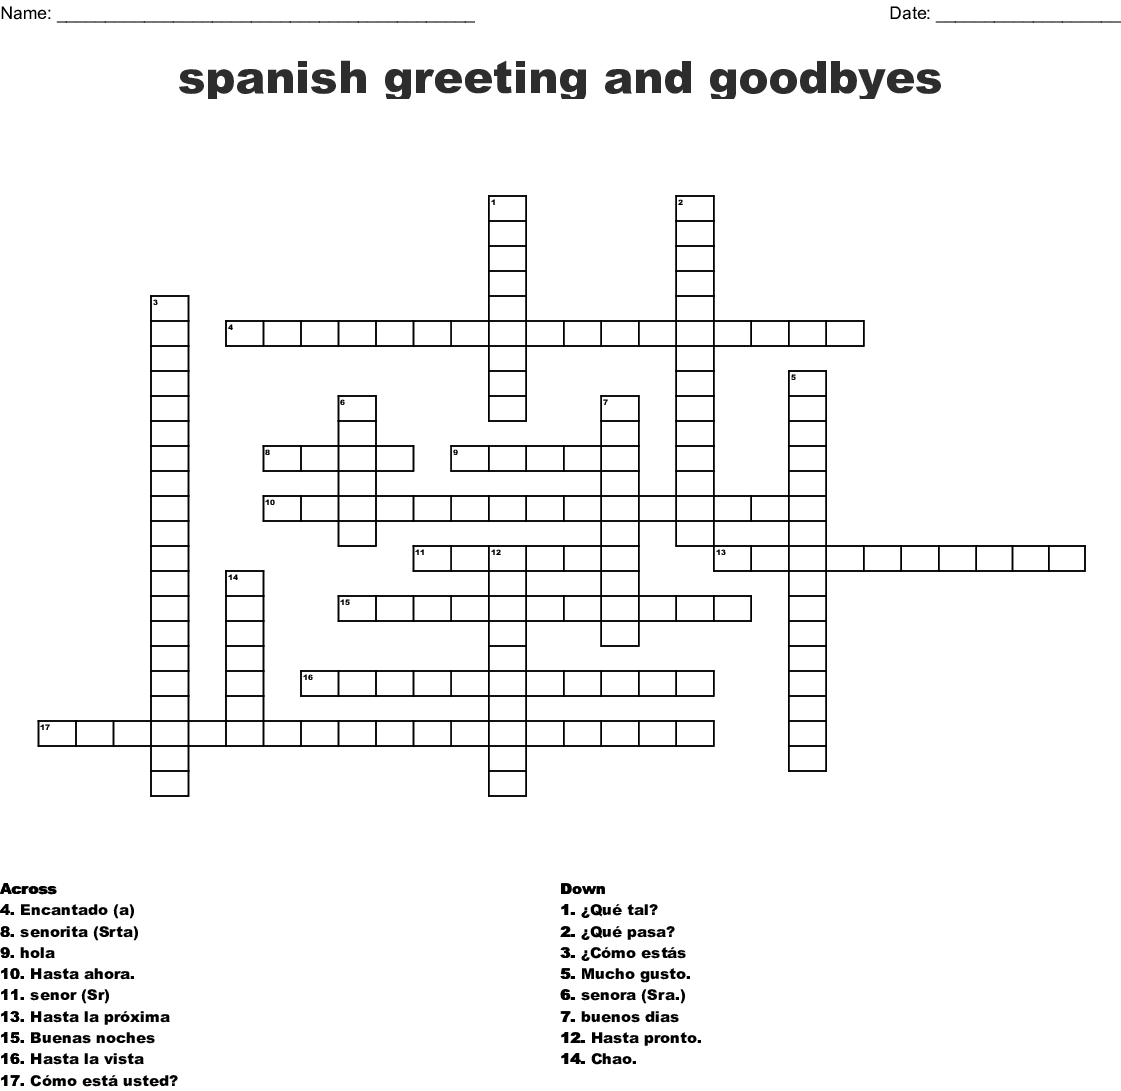 How to Say Greetings and Goodbyes in Spanish: 3 Steps |Spanish Greetings And Good Byes